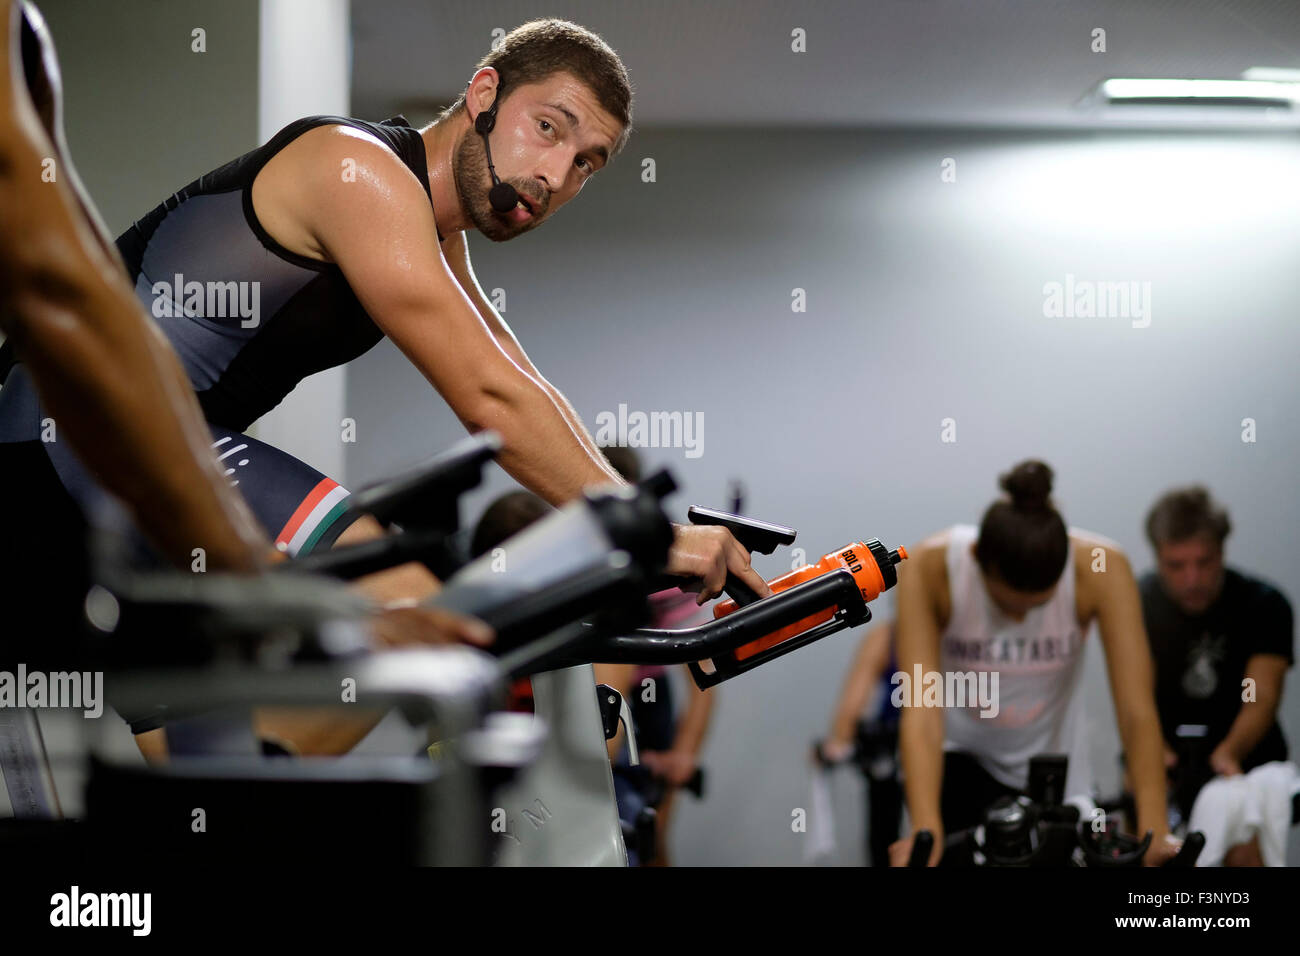 Fitness instructor in front of people riding stationary bicycles during a spinning class at the gym - Stock Image